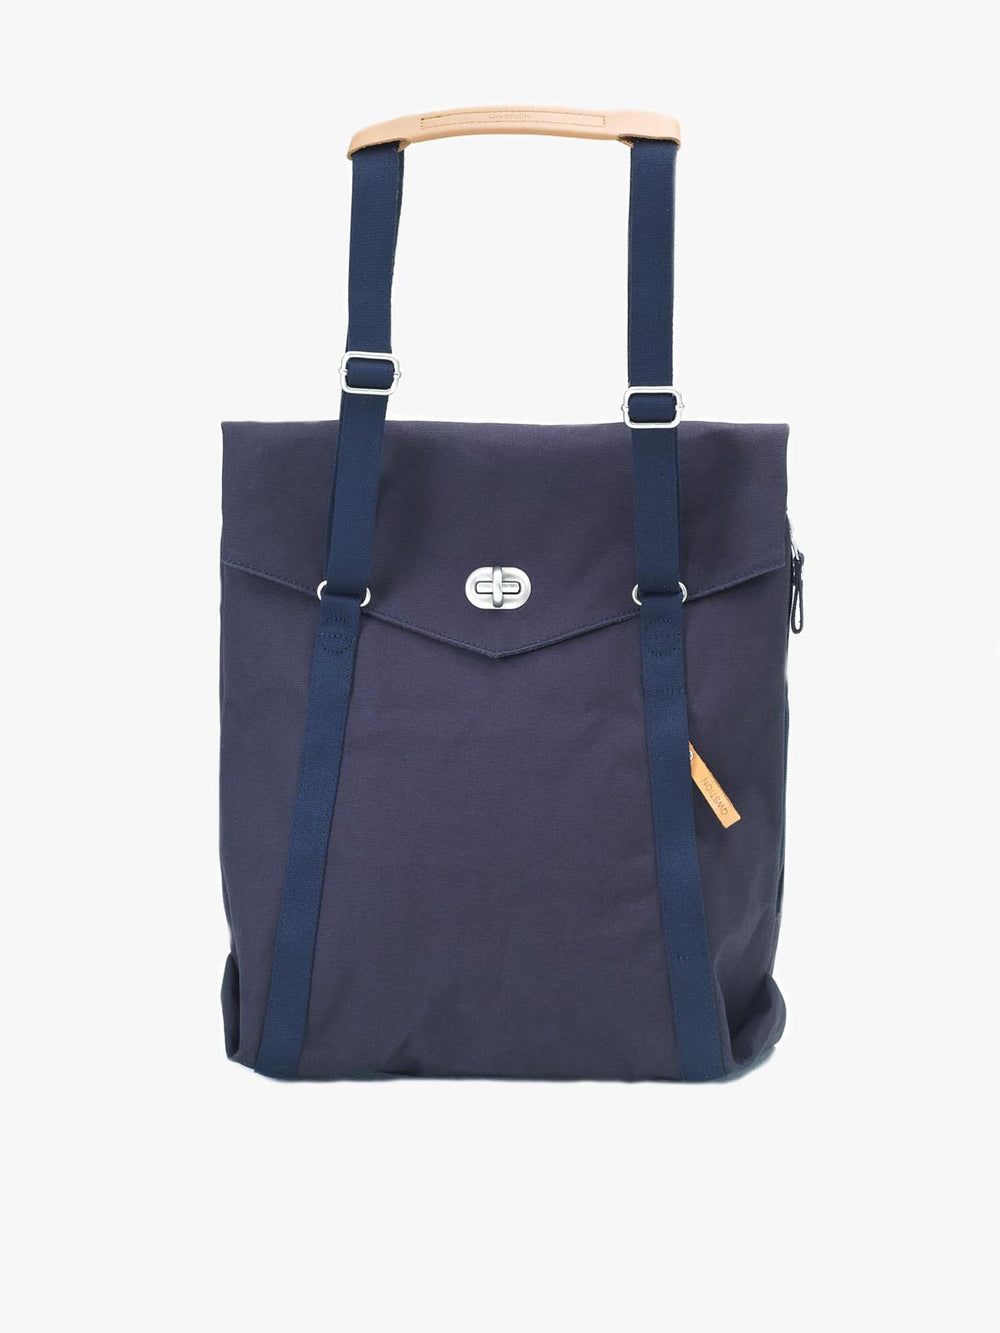 Qwstion Tote in organic cotton